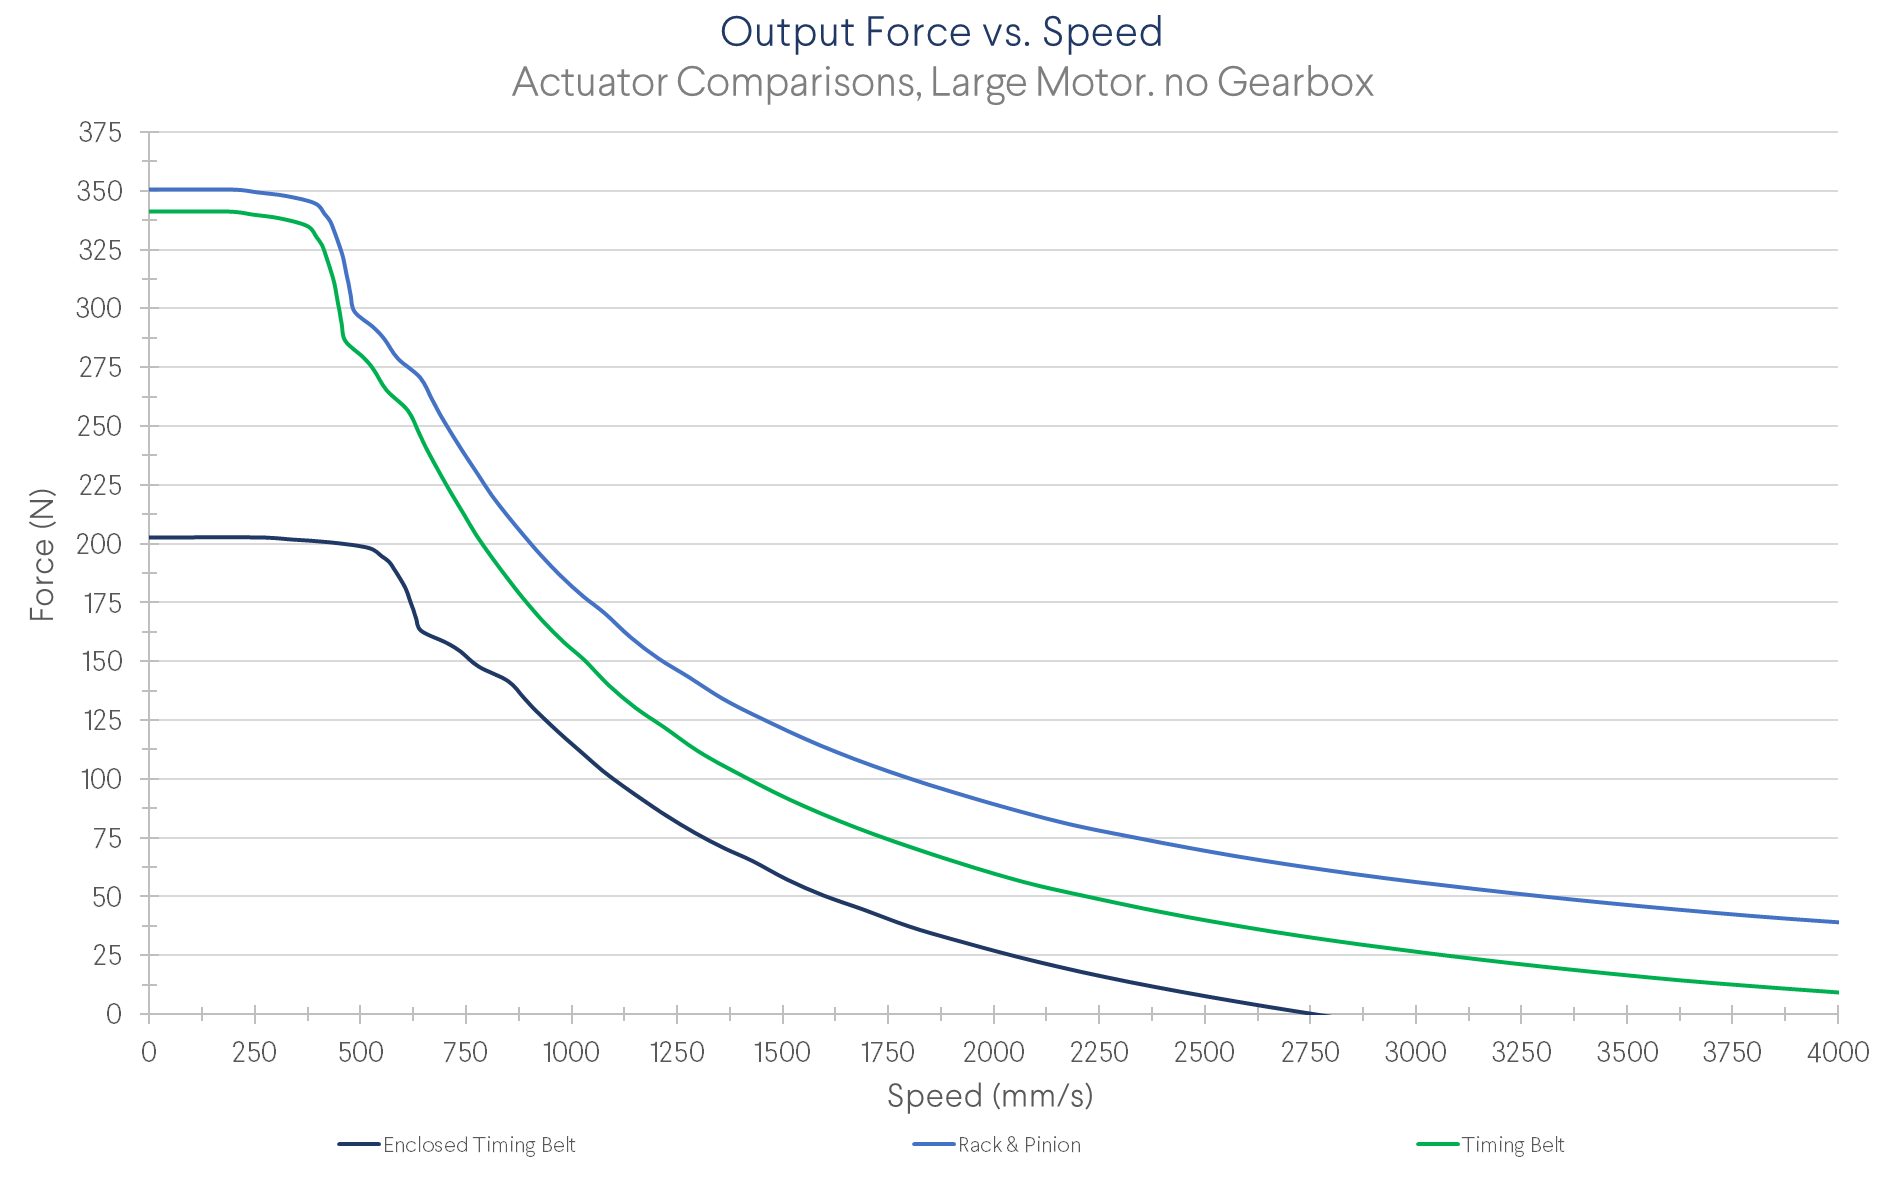 Figure 6: Force as a function of linear speed comparison between the timing belt, rack and pinion, and enclosed timing belt linear actuators. Note all data represents performance when using our largest NEMA 34 (MO-SM-011-0000).